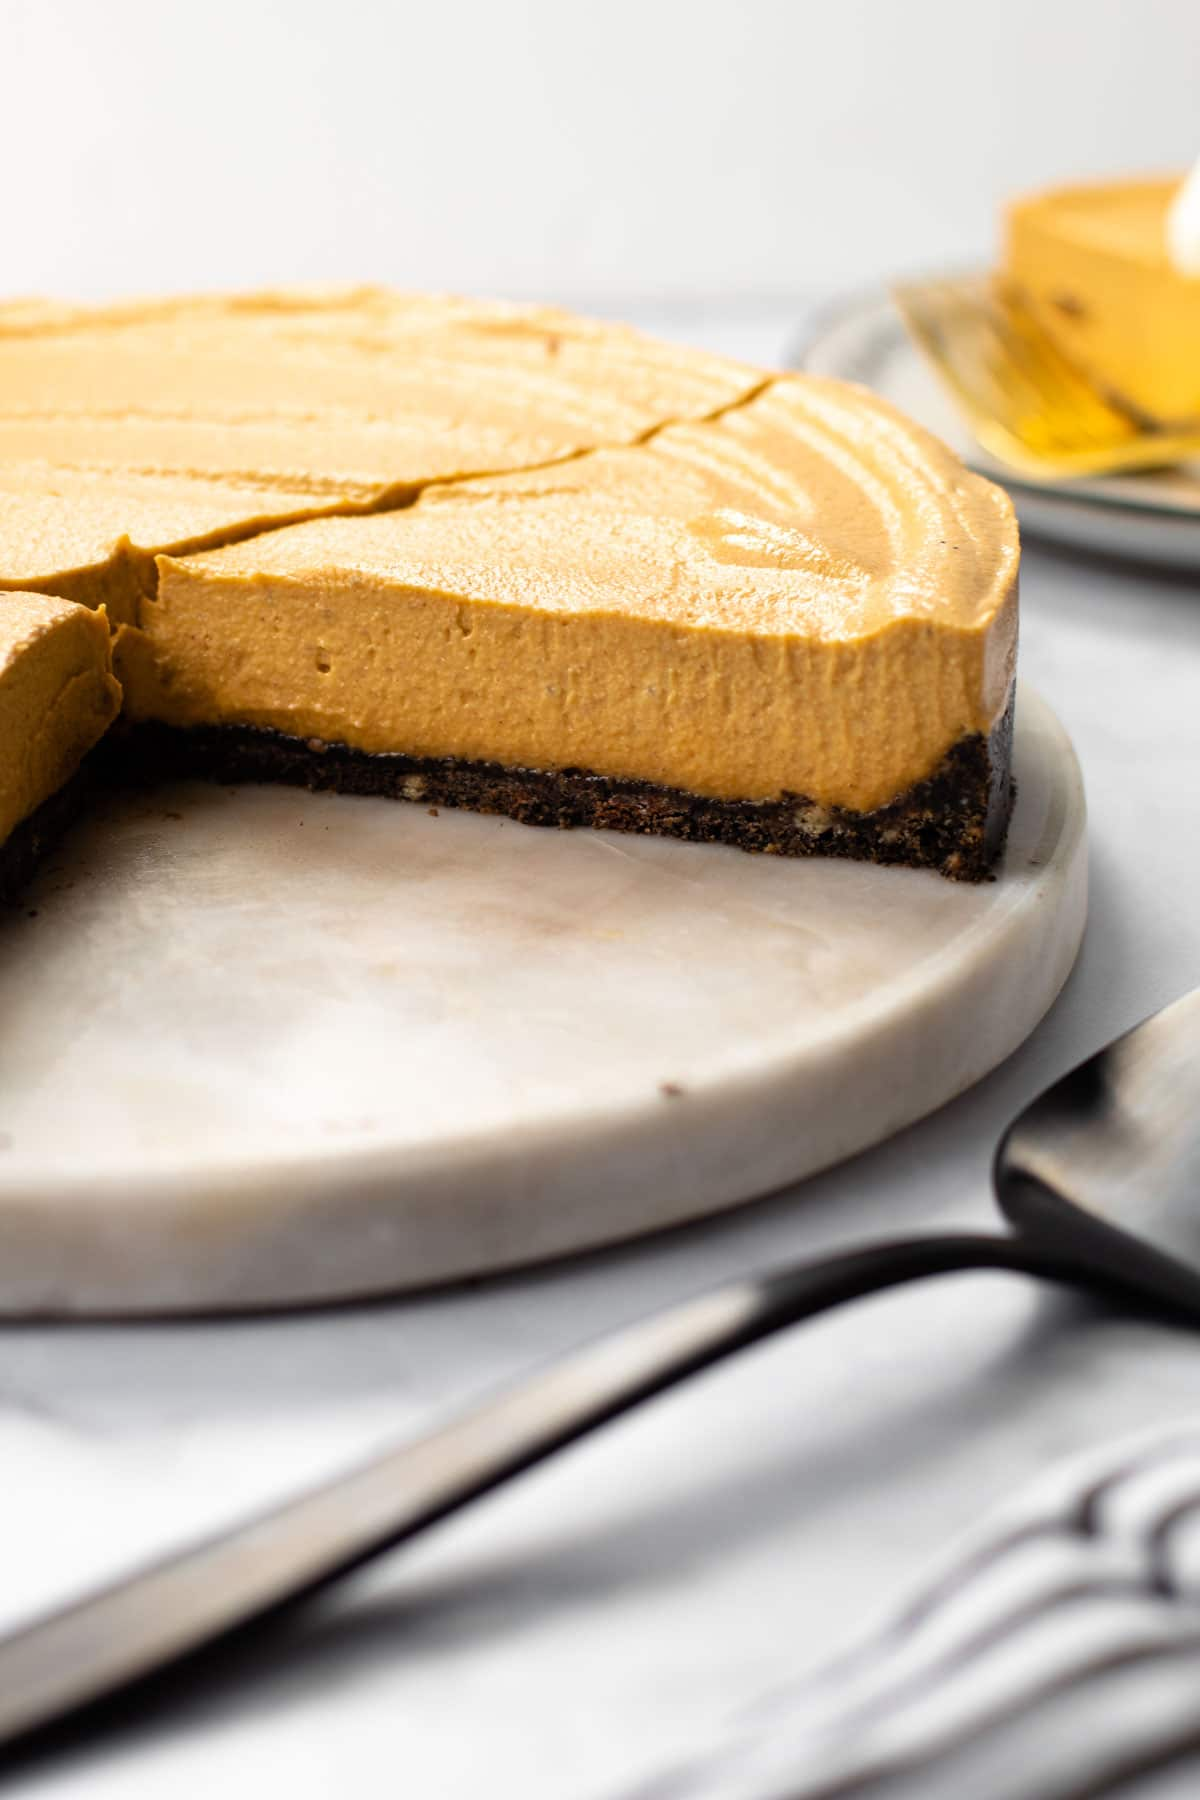 A slice of vegan pumpkin cheesecake.